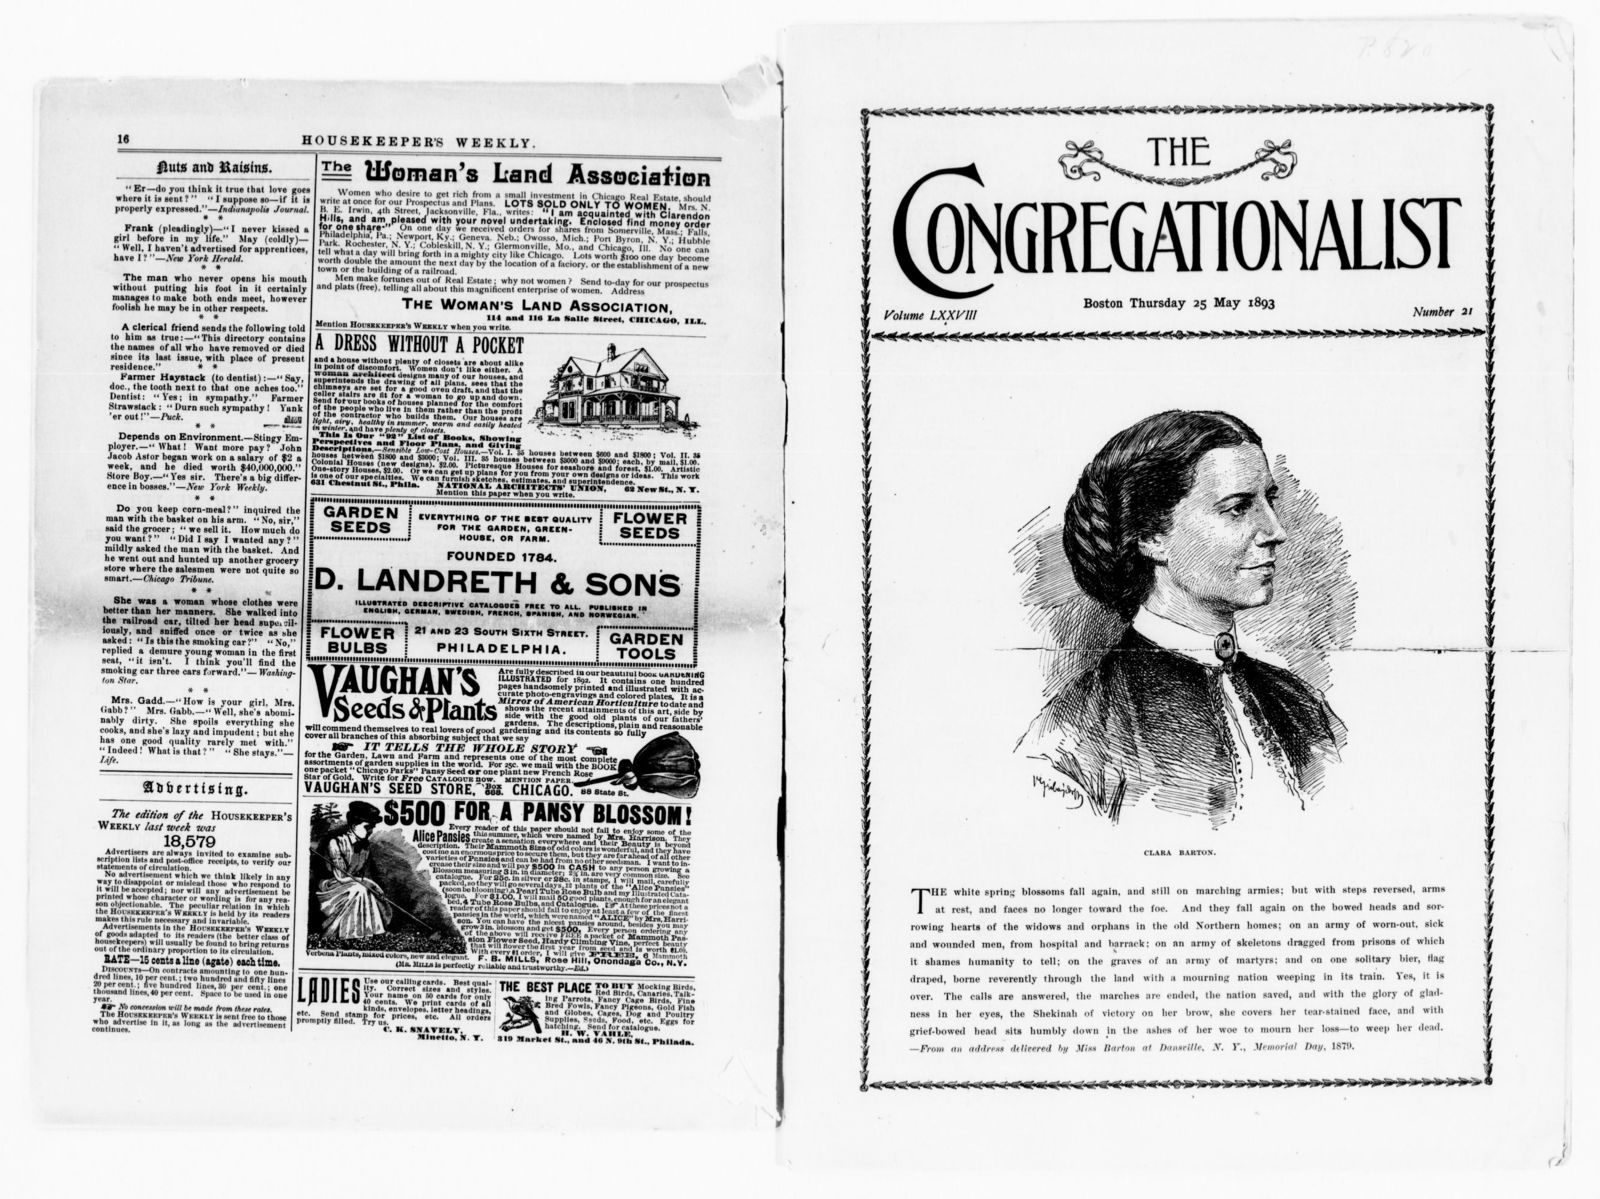 clara barton papers: miscellany, 1856-1957; printed matter; 1876